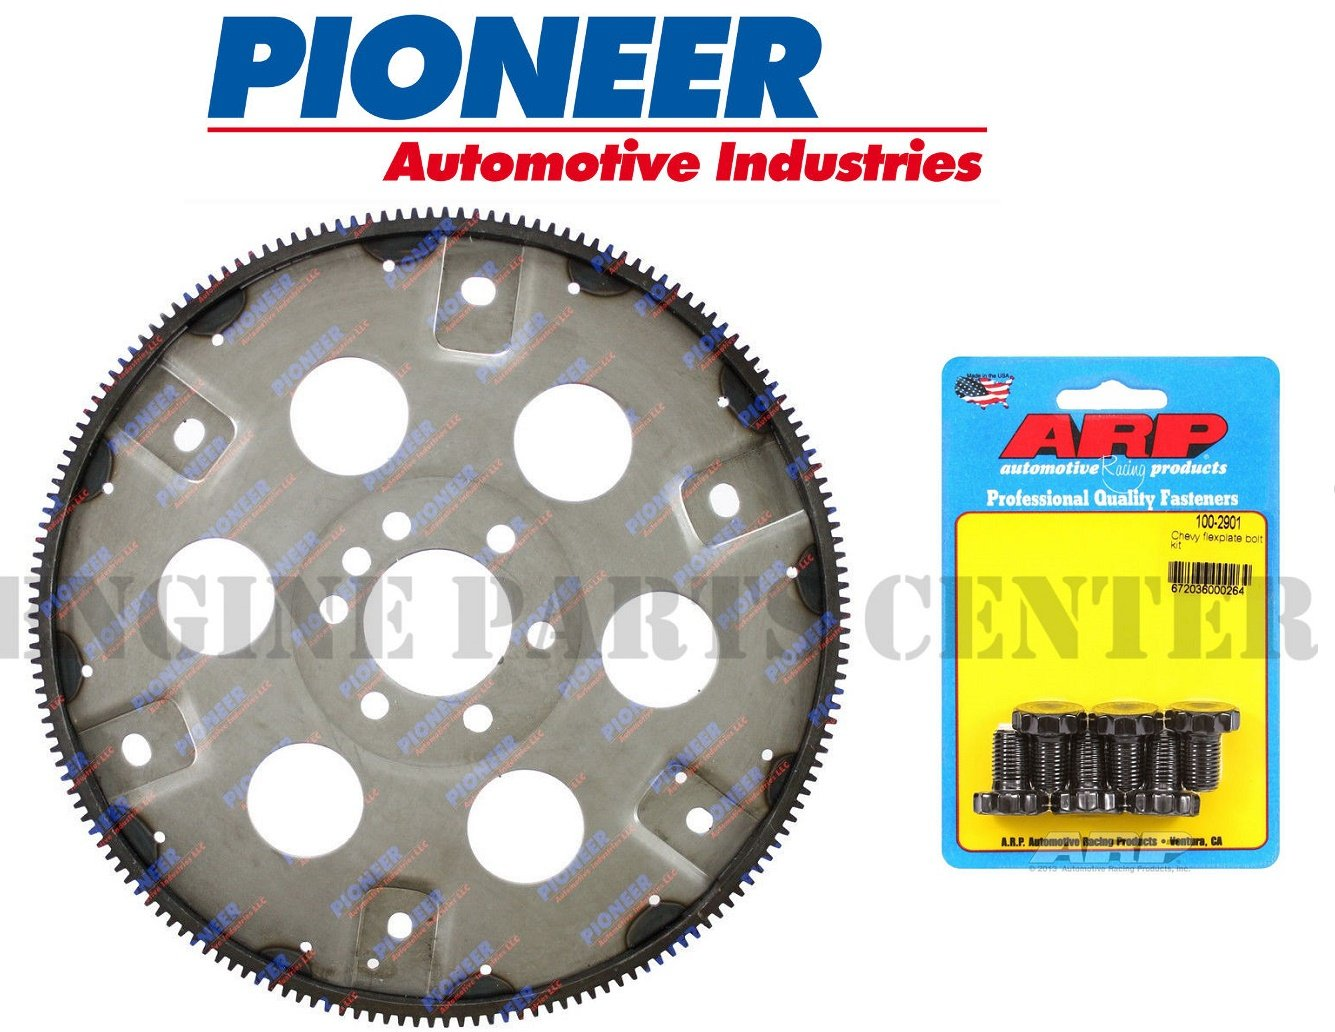 NEW Automatic Transmission 168 tooth Flexplate+ HP BOLTS compatible with Chevy 383 400 External (Flywheel + Bolts)